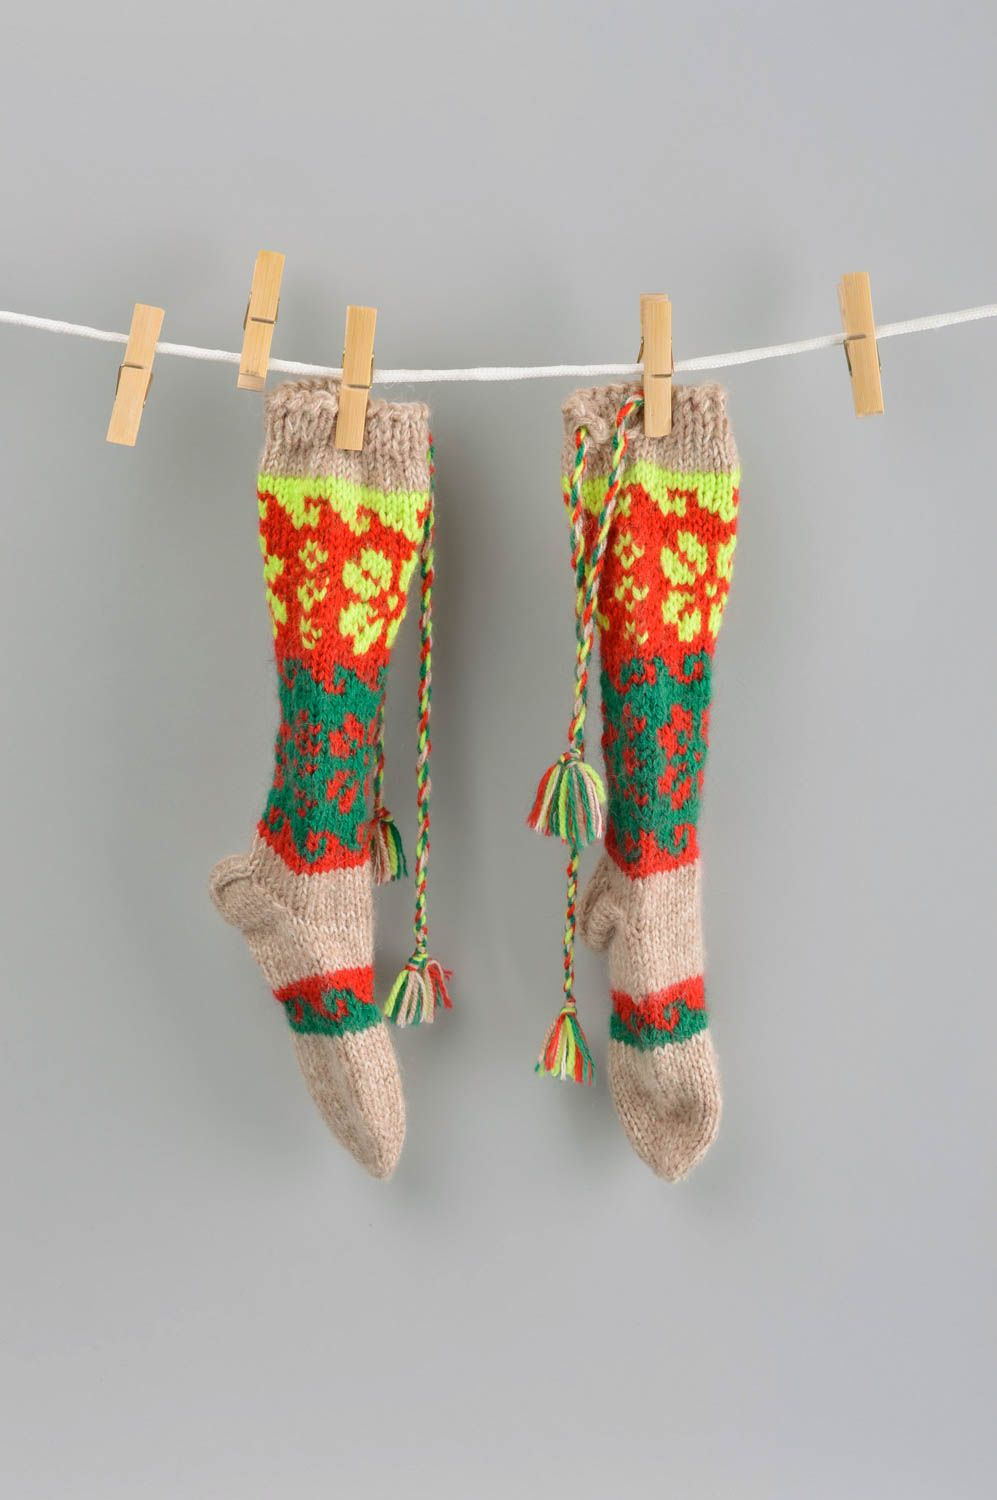 Notice: Undefined variable: cat in /home/newmadeheart/prod/cache/volt/%%home%%newmadeheart%%prod%%app%%views%%product%%index.volt.php on line 139  Colorful handmade wool socks warm knitted socks winter accessories for kids - MADEheart.com